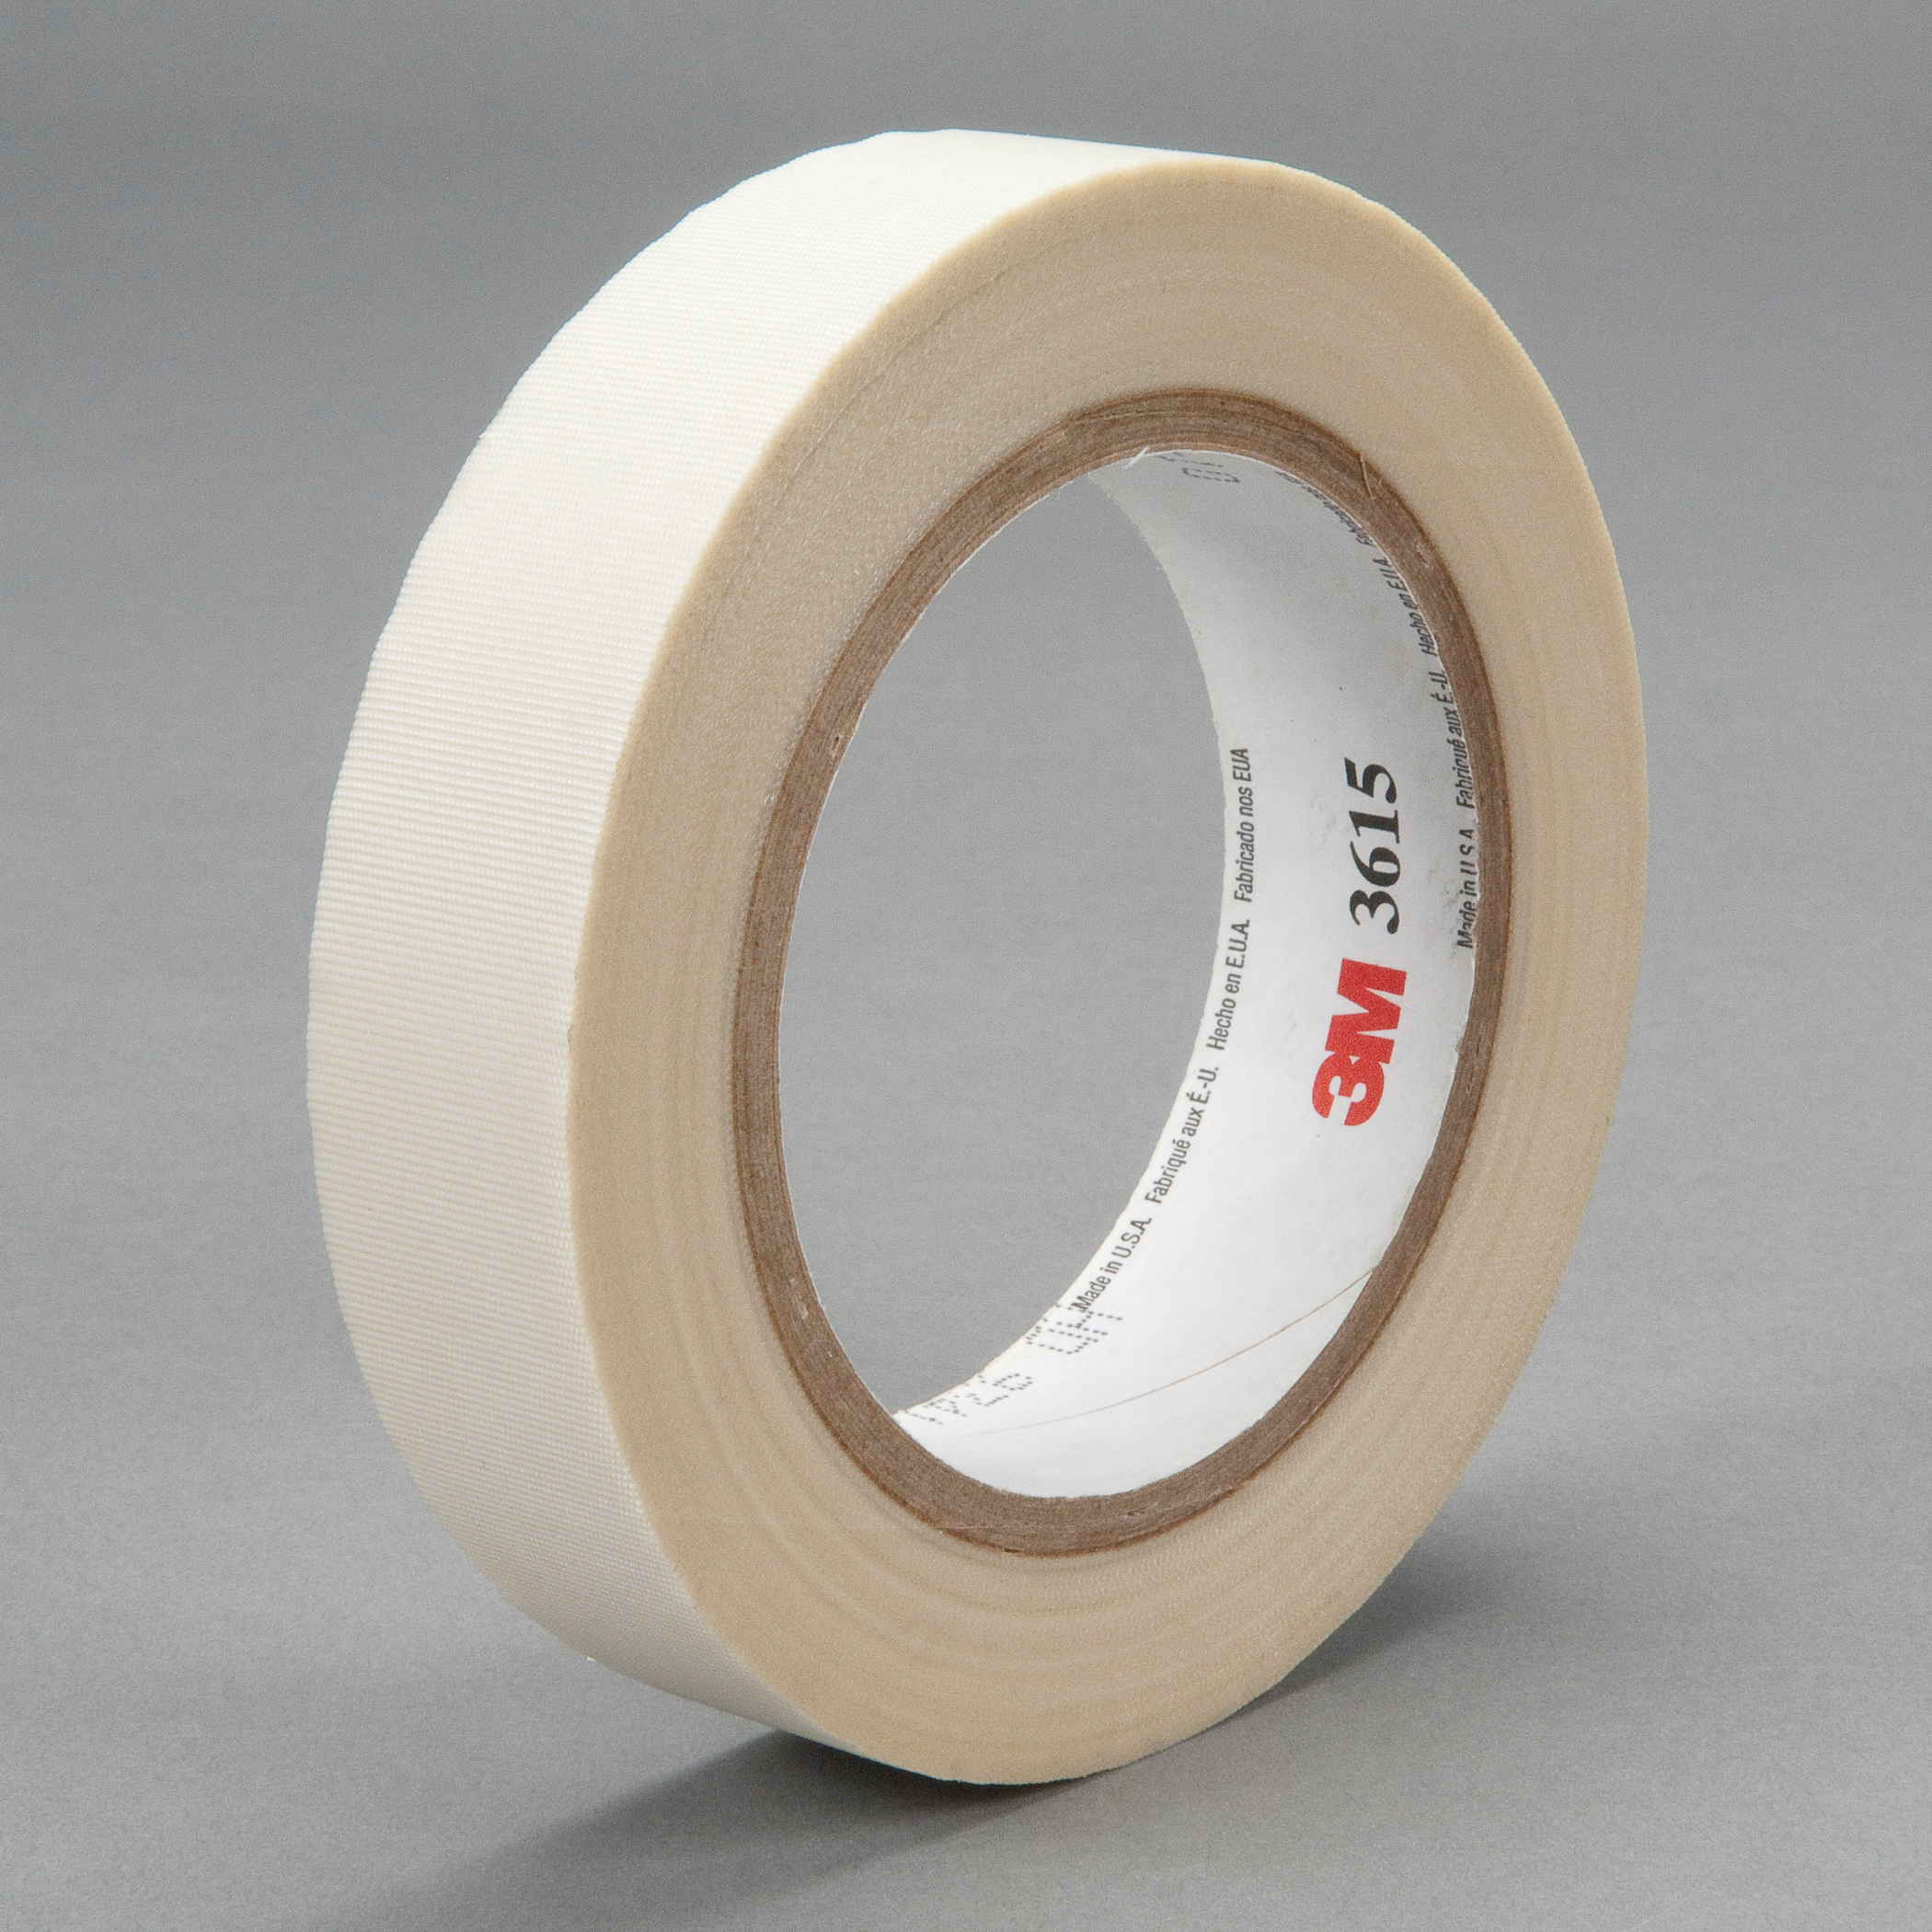 3M™ 021200-48234 Thick General Purpose Tape, 36 yd L x 3/4 in W, 7 mil THK, Silicone Adhesive, Glass Cloth Backing, White